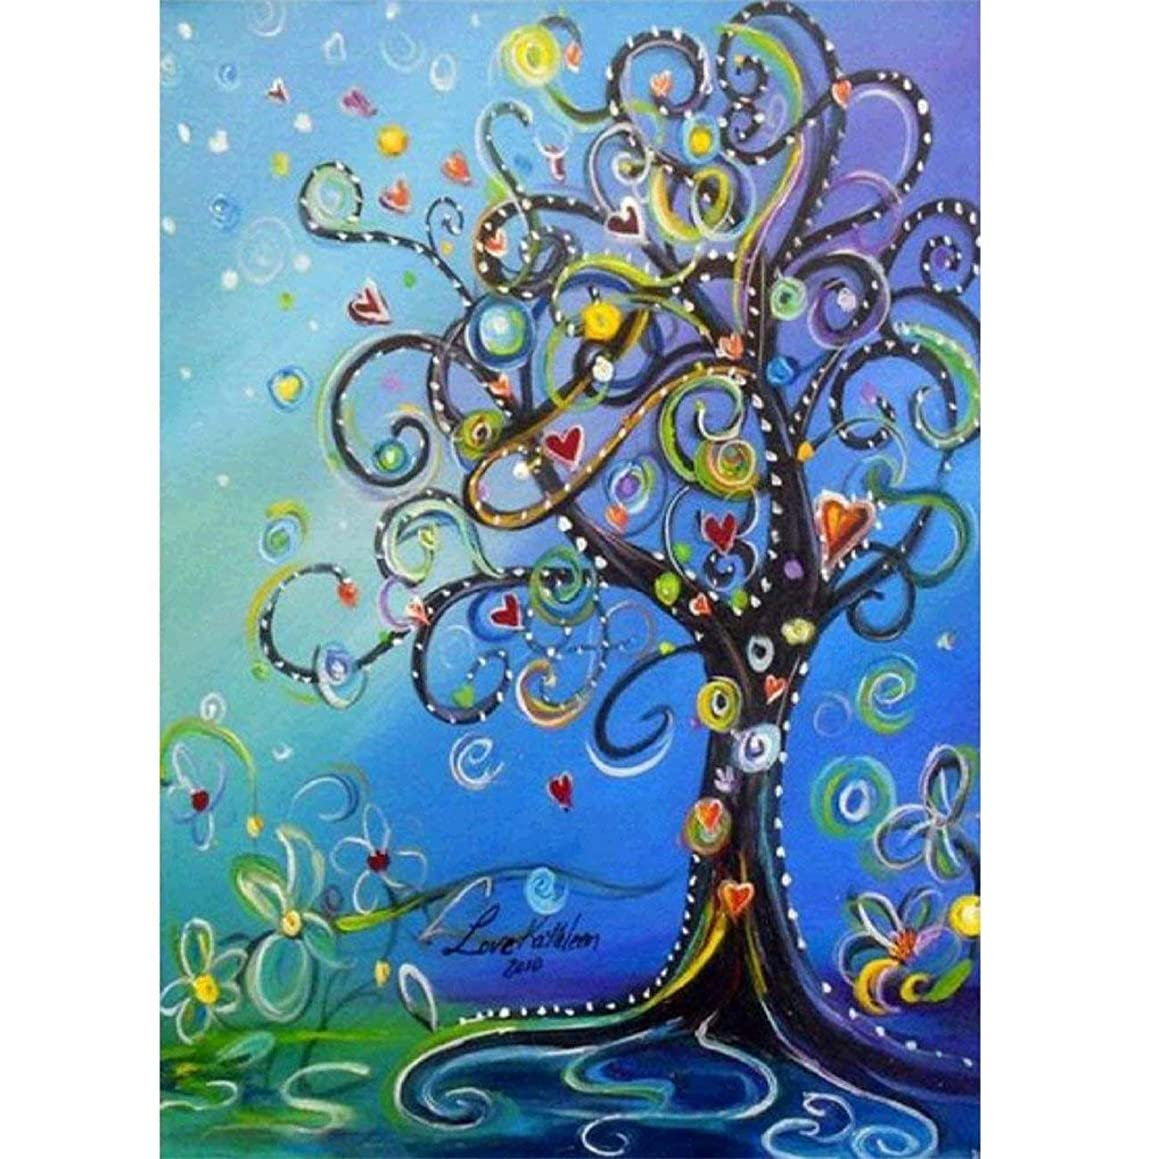 RICUVED 5D Diamond Painting by Number Kit, Love Tree Full Drill Rhinestone Embroidery Cross Stitch Supply Arts Craft Canvas Wall Decor 12 x16inch